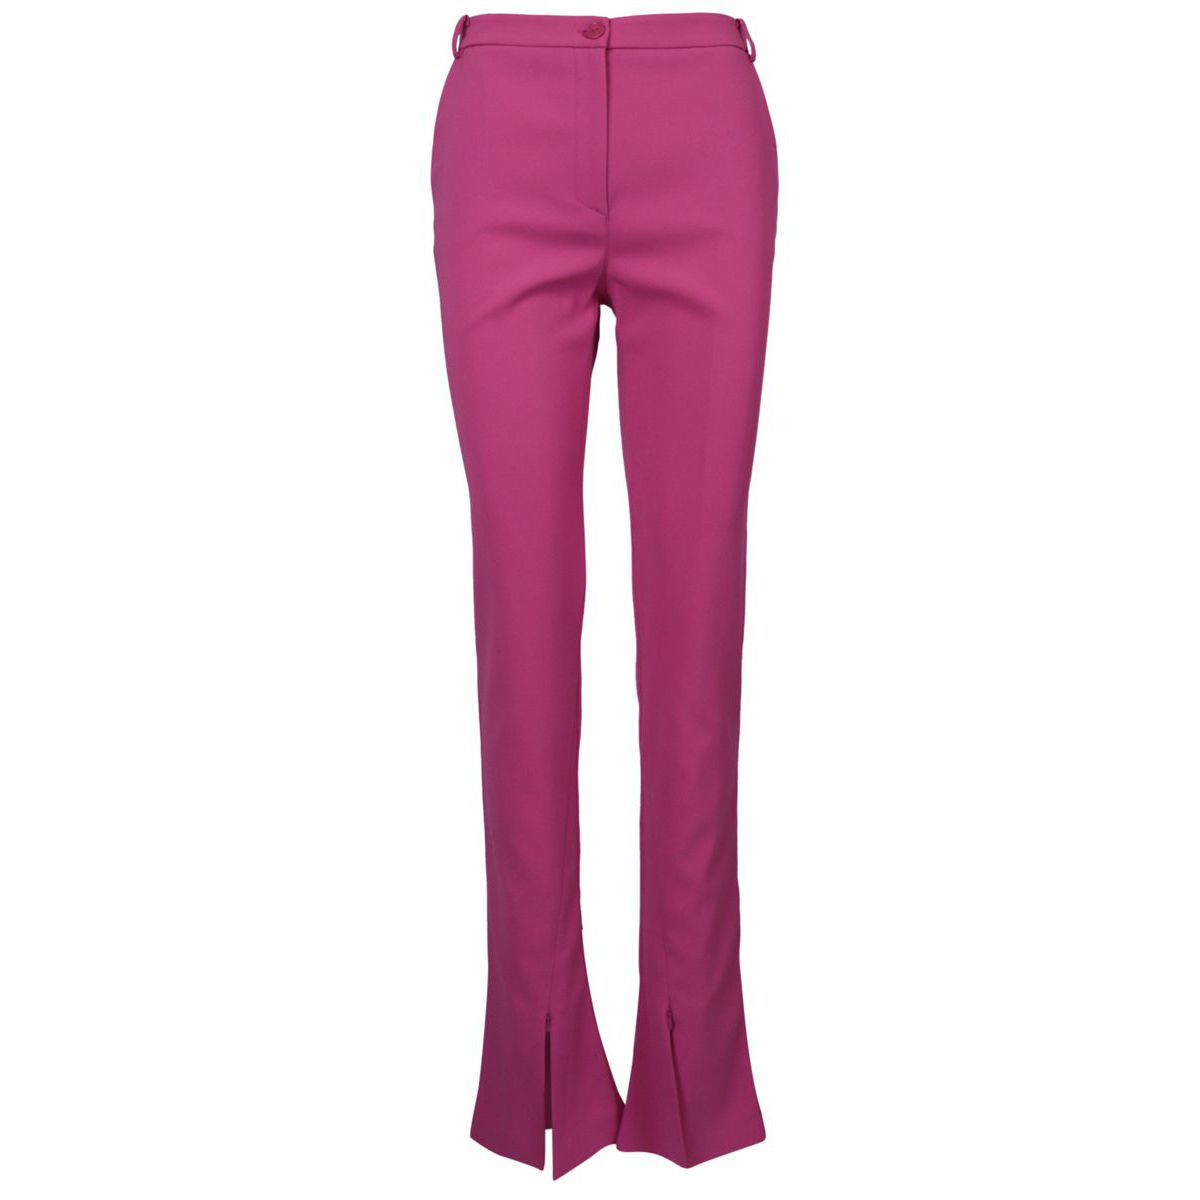 Slim crepe trousers with slits on the bottom Very berry Patrizia Pepe